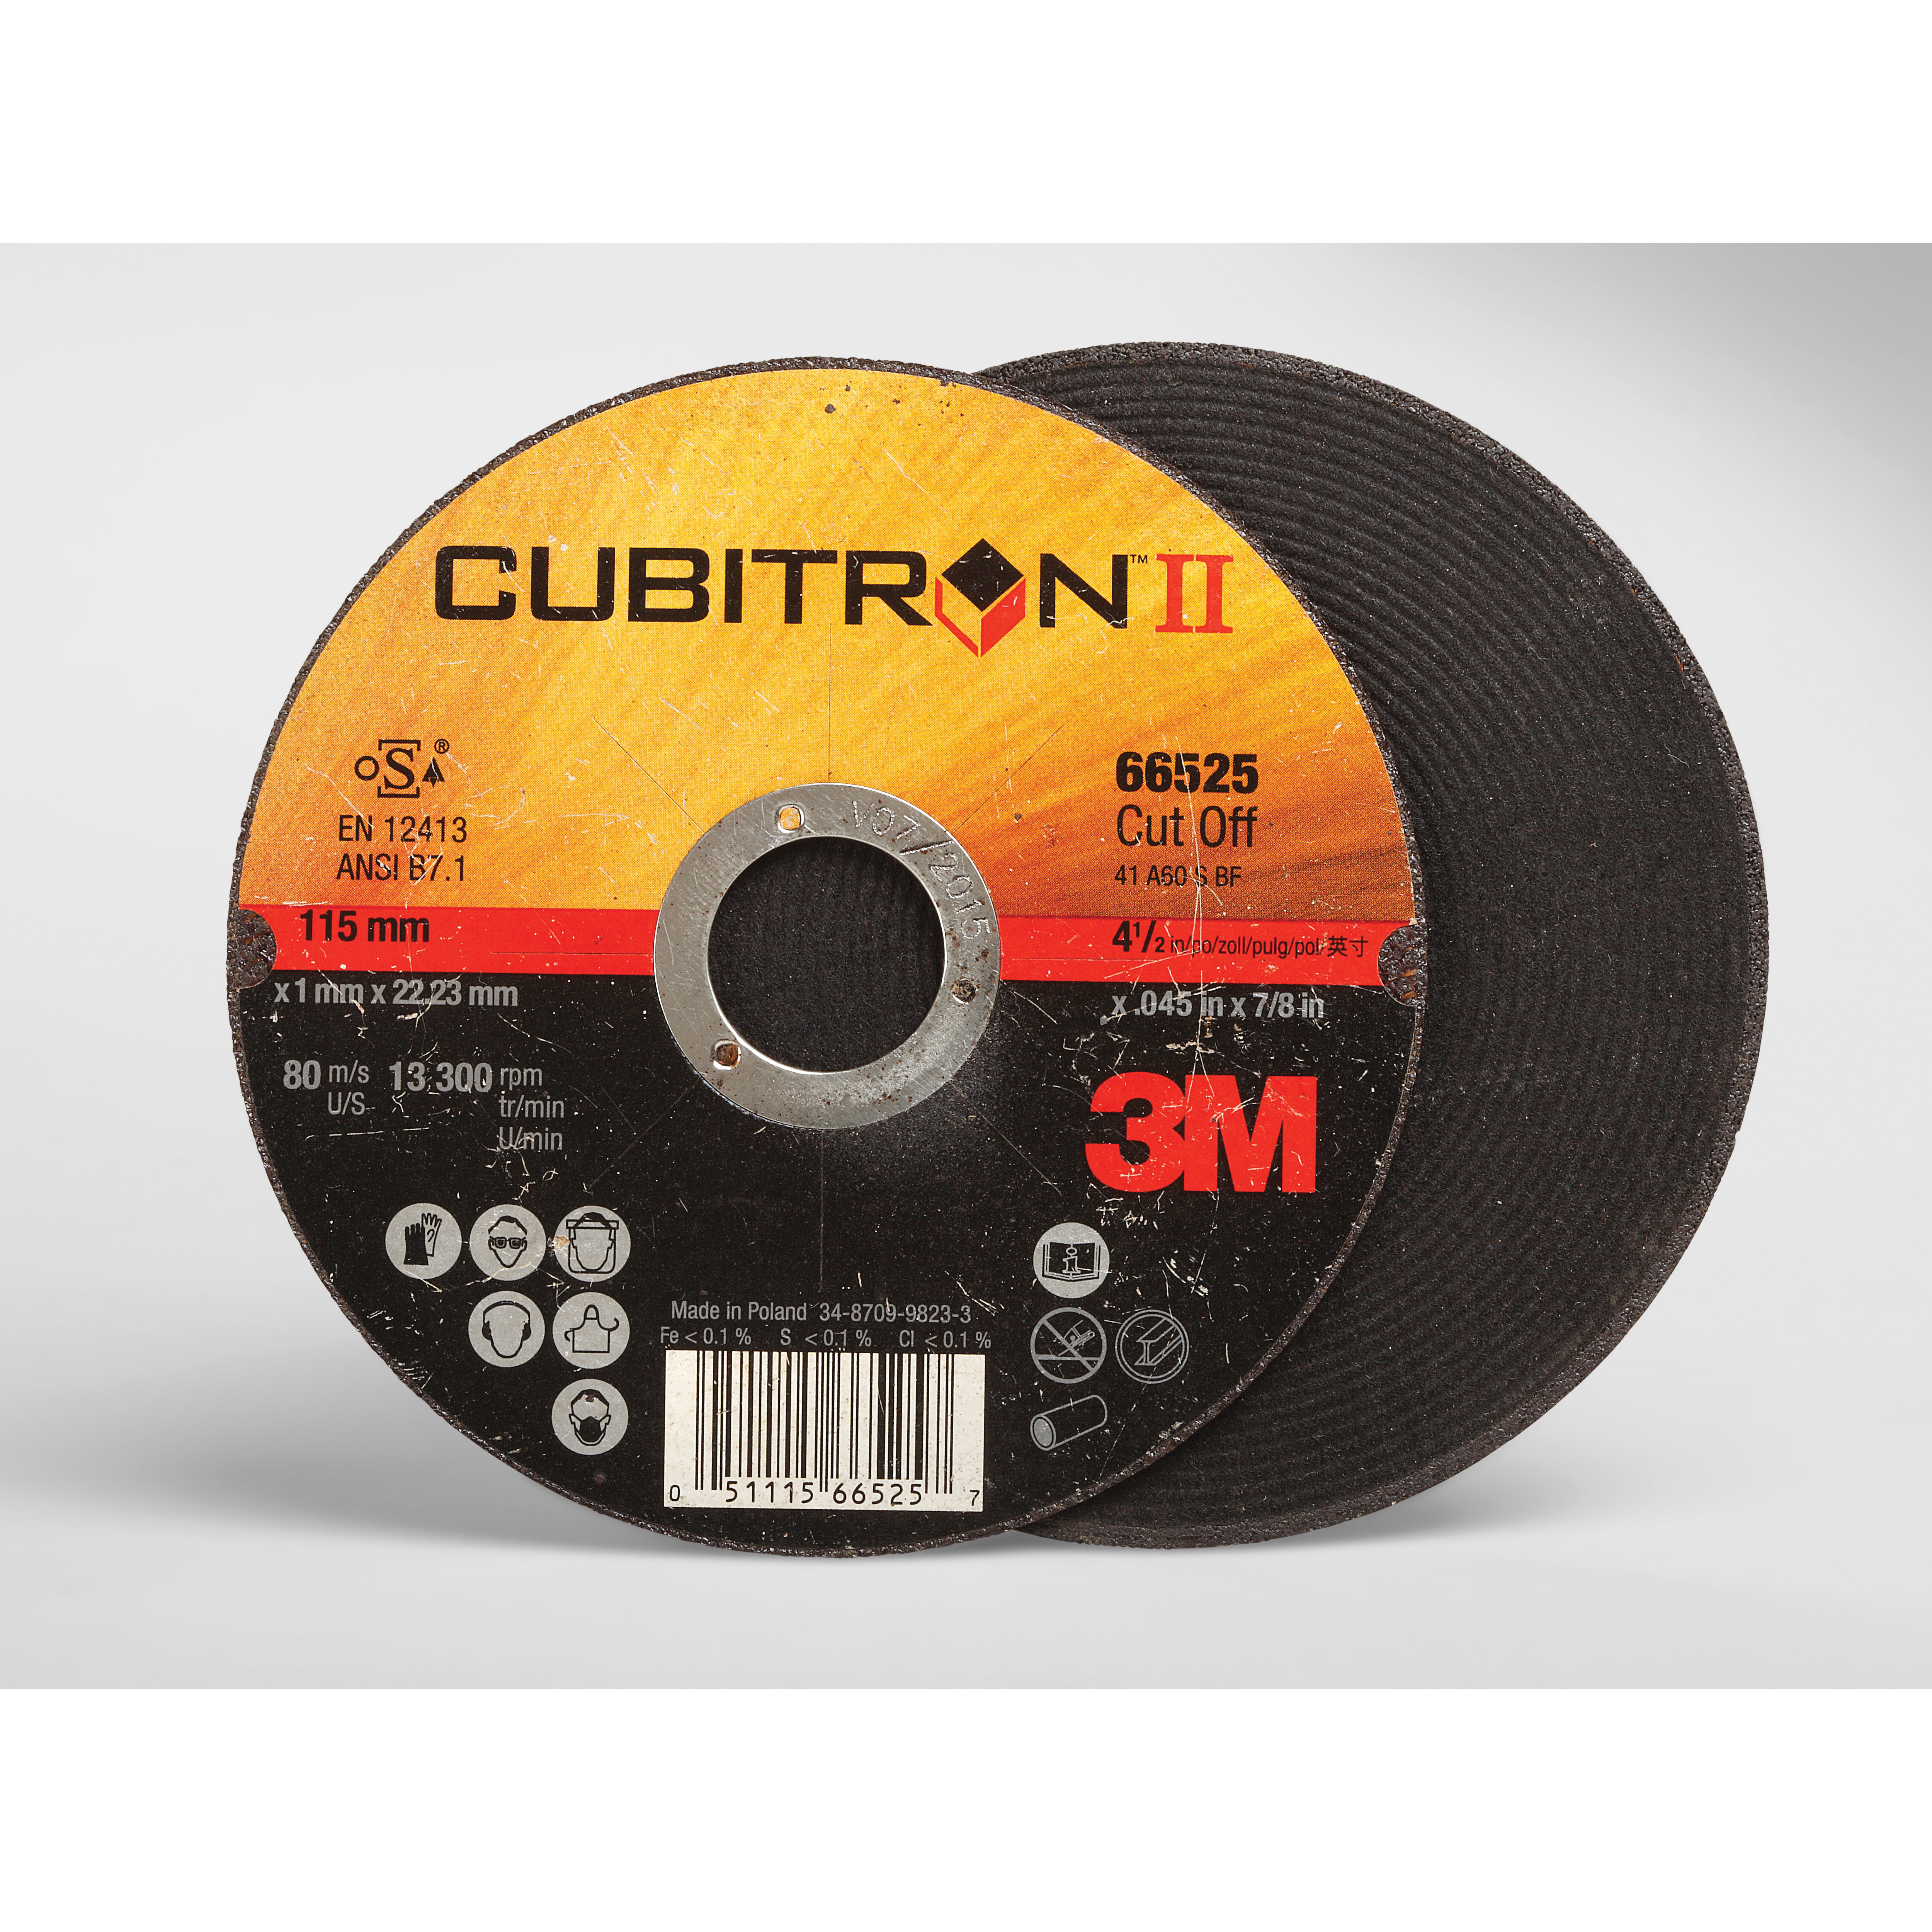 Cubitron™ II 051115-66524 COW Straight Rotary File, 4 in Dia x 1/8 in THK, 3/8 in Center Hole, 36+ Grit, Ceramic Abrasive